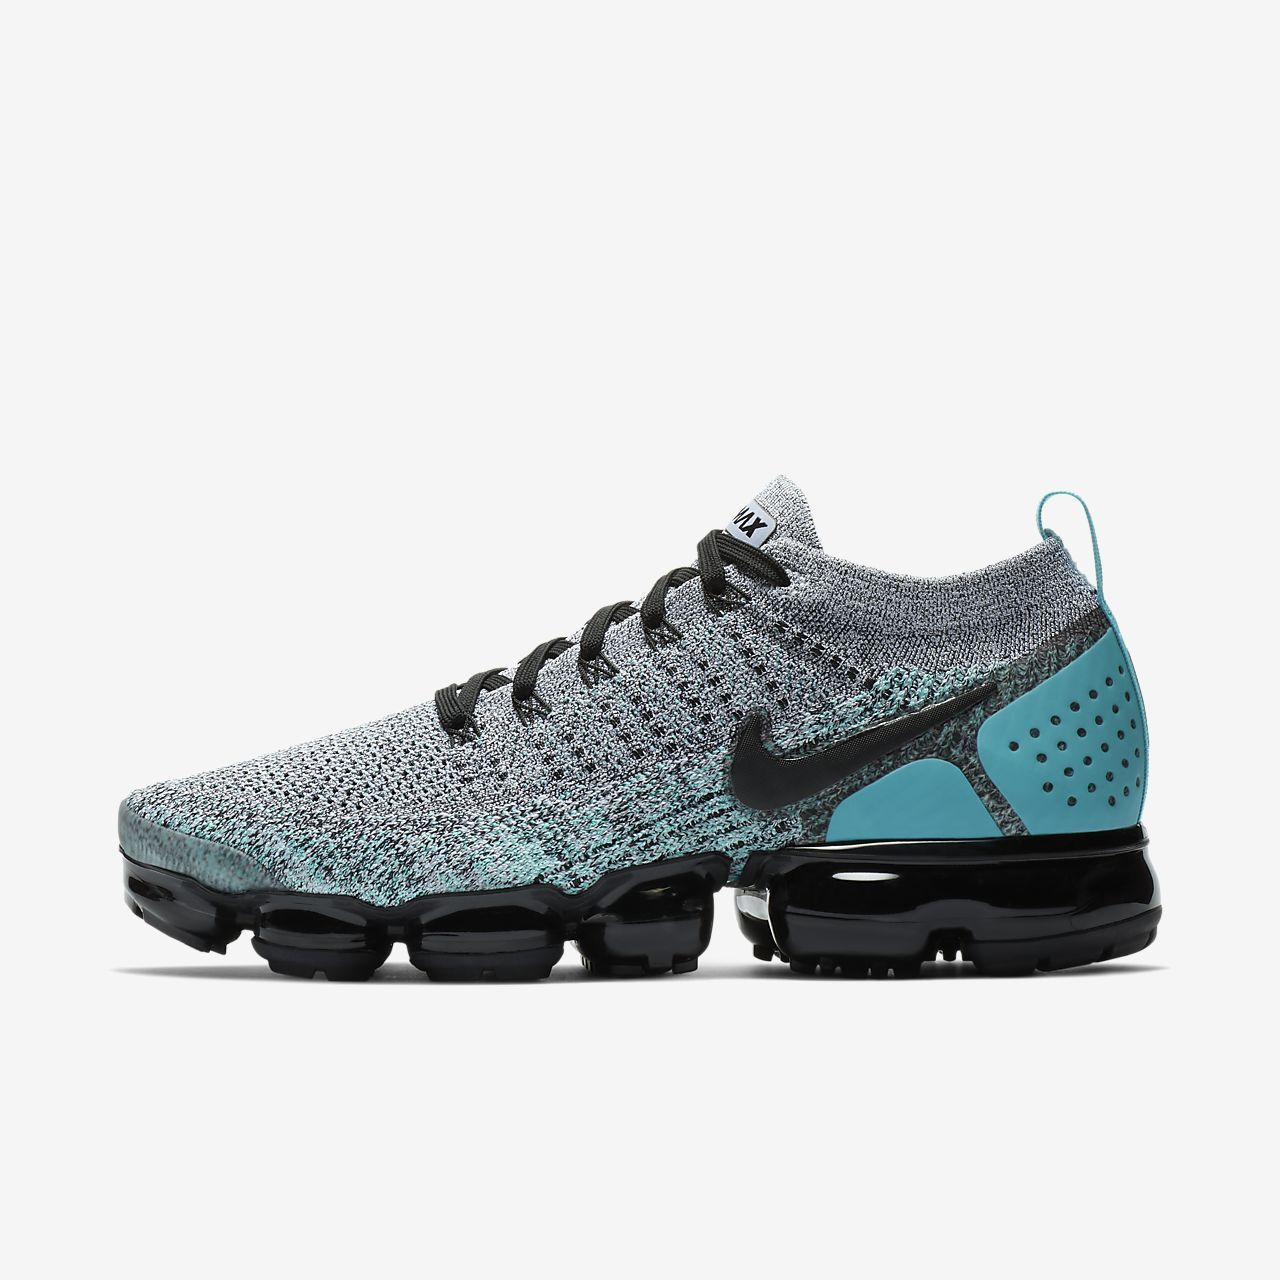 best service 96755 4ad88 Nike Air VaporMax Flyknit 2 Mens Running Shoe White Clear Jade Dusty  Cactus Black Style  942842-104